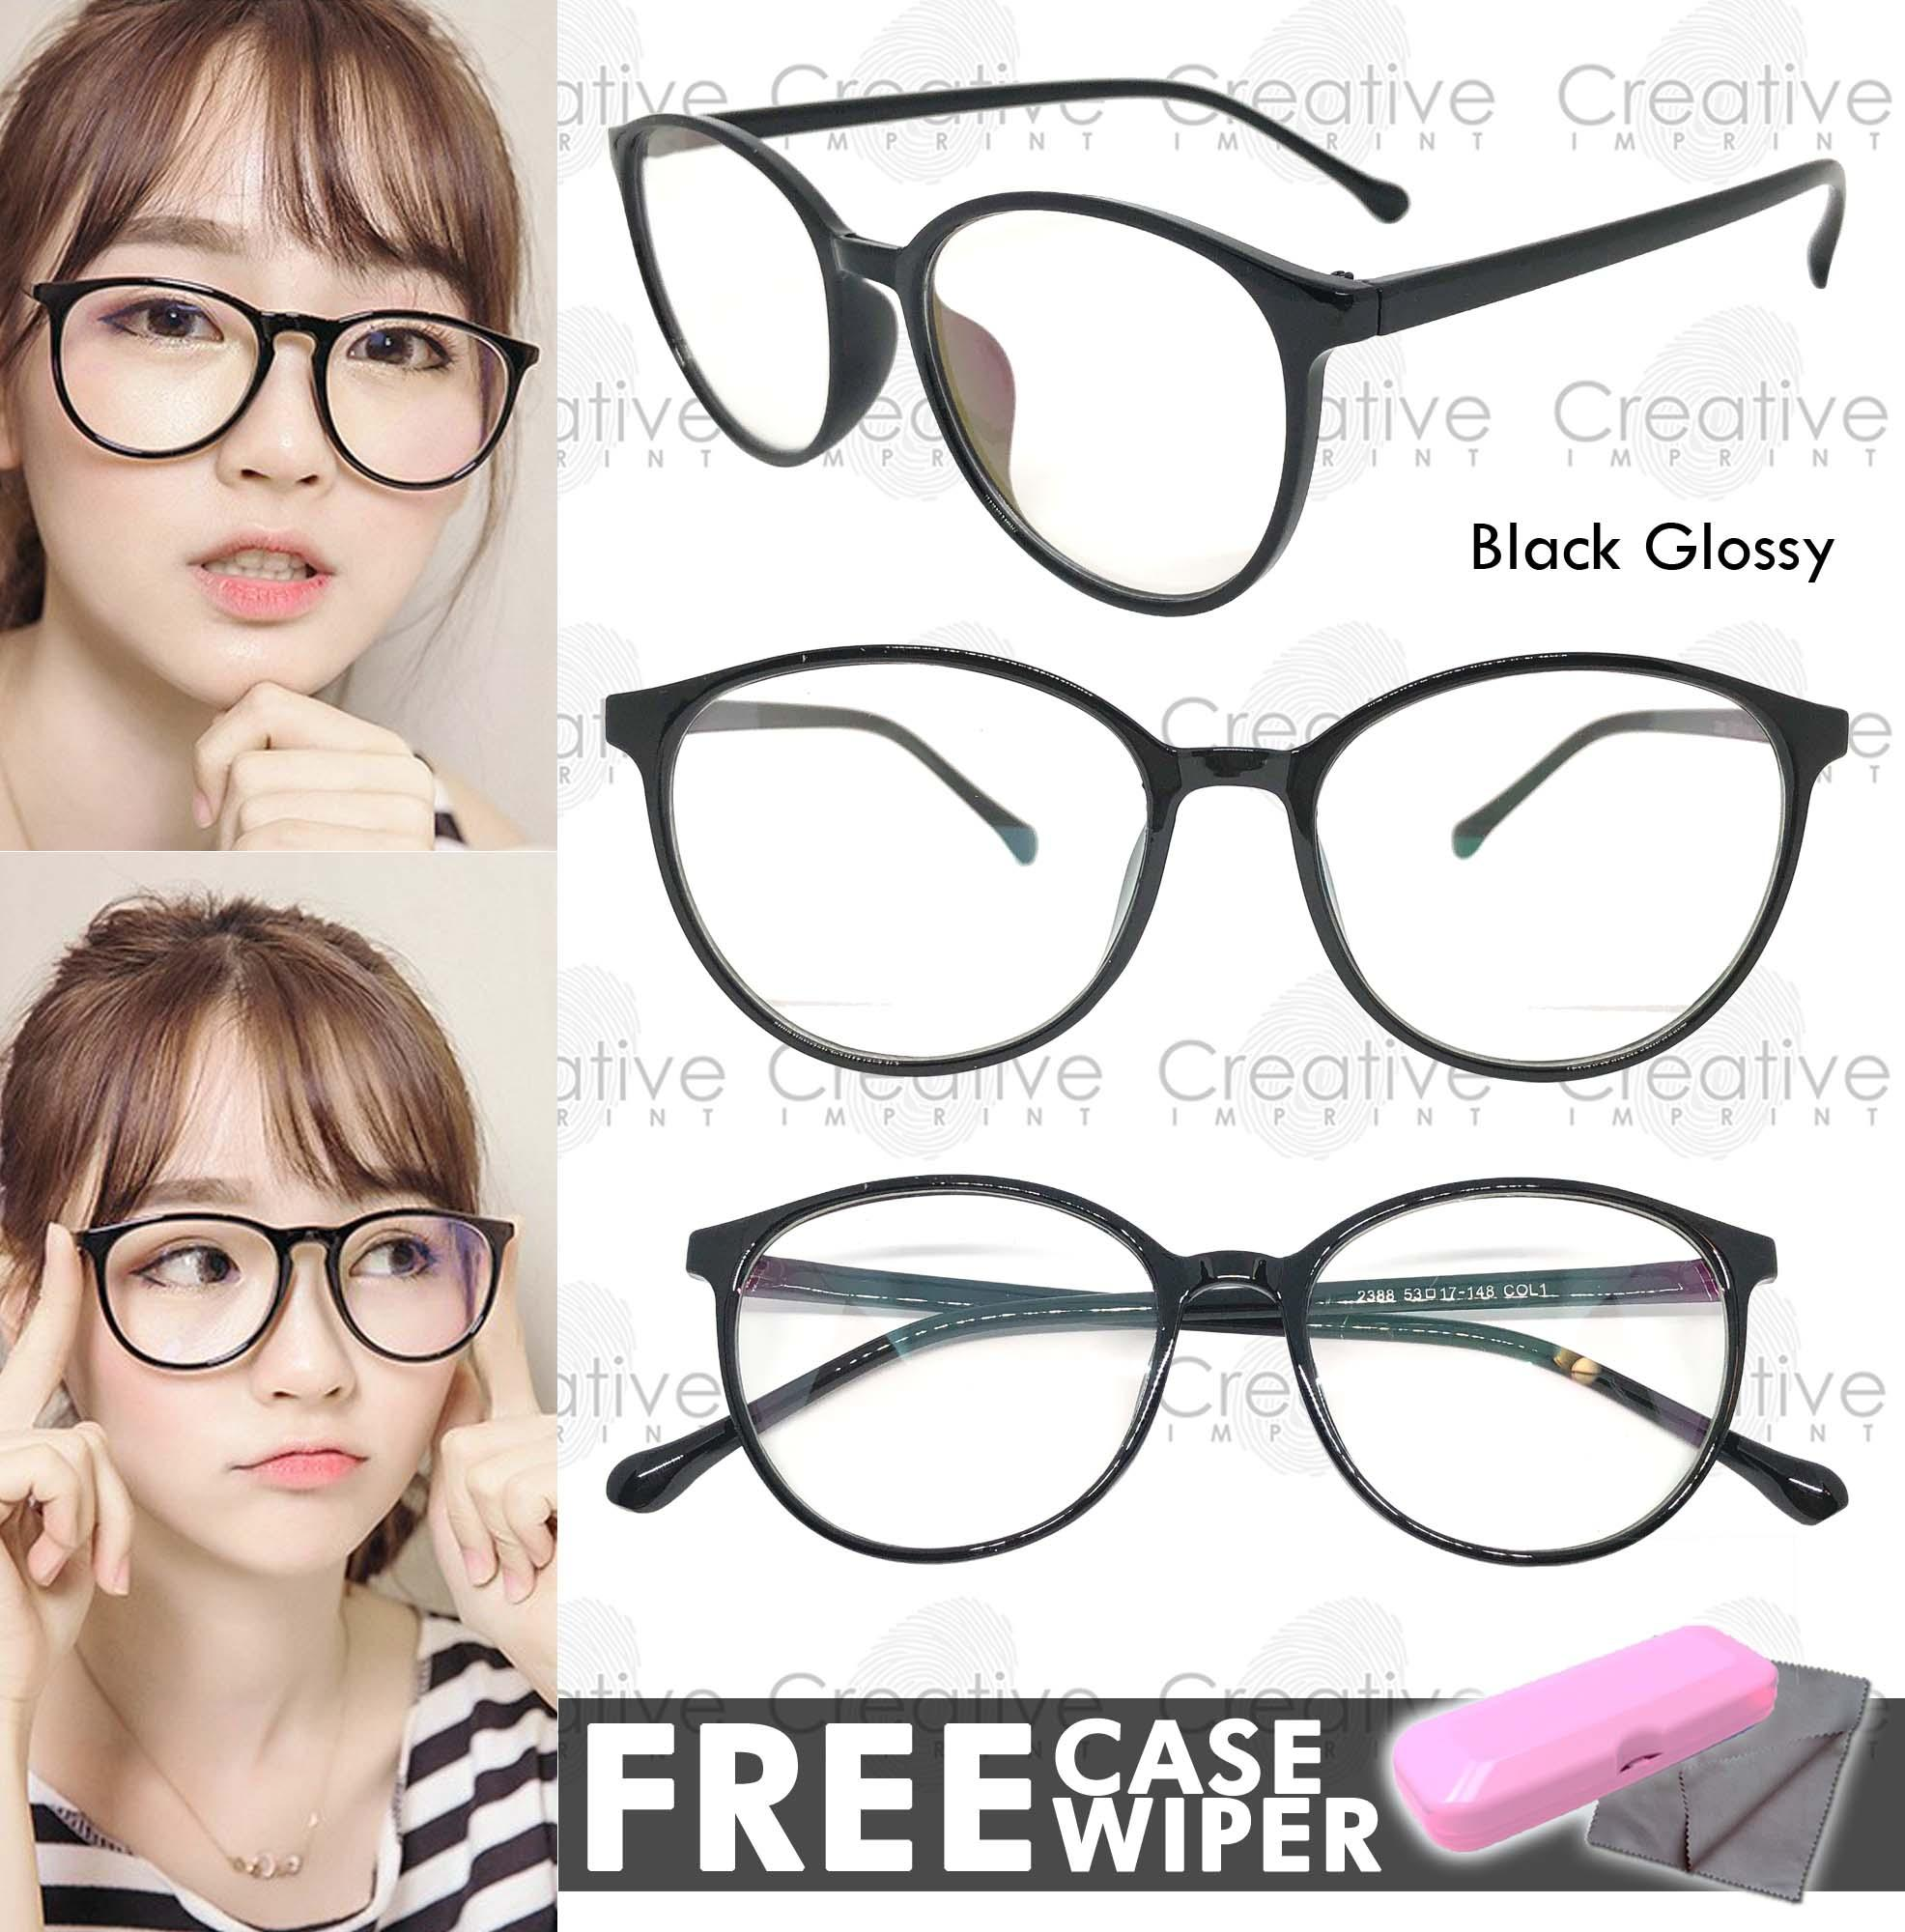 57f846bcf38 Creative Imprint Eyeglasses Anti-Radiation Lens ( 05 Black Glossy)  Anti-Fatigue